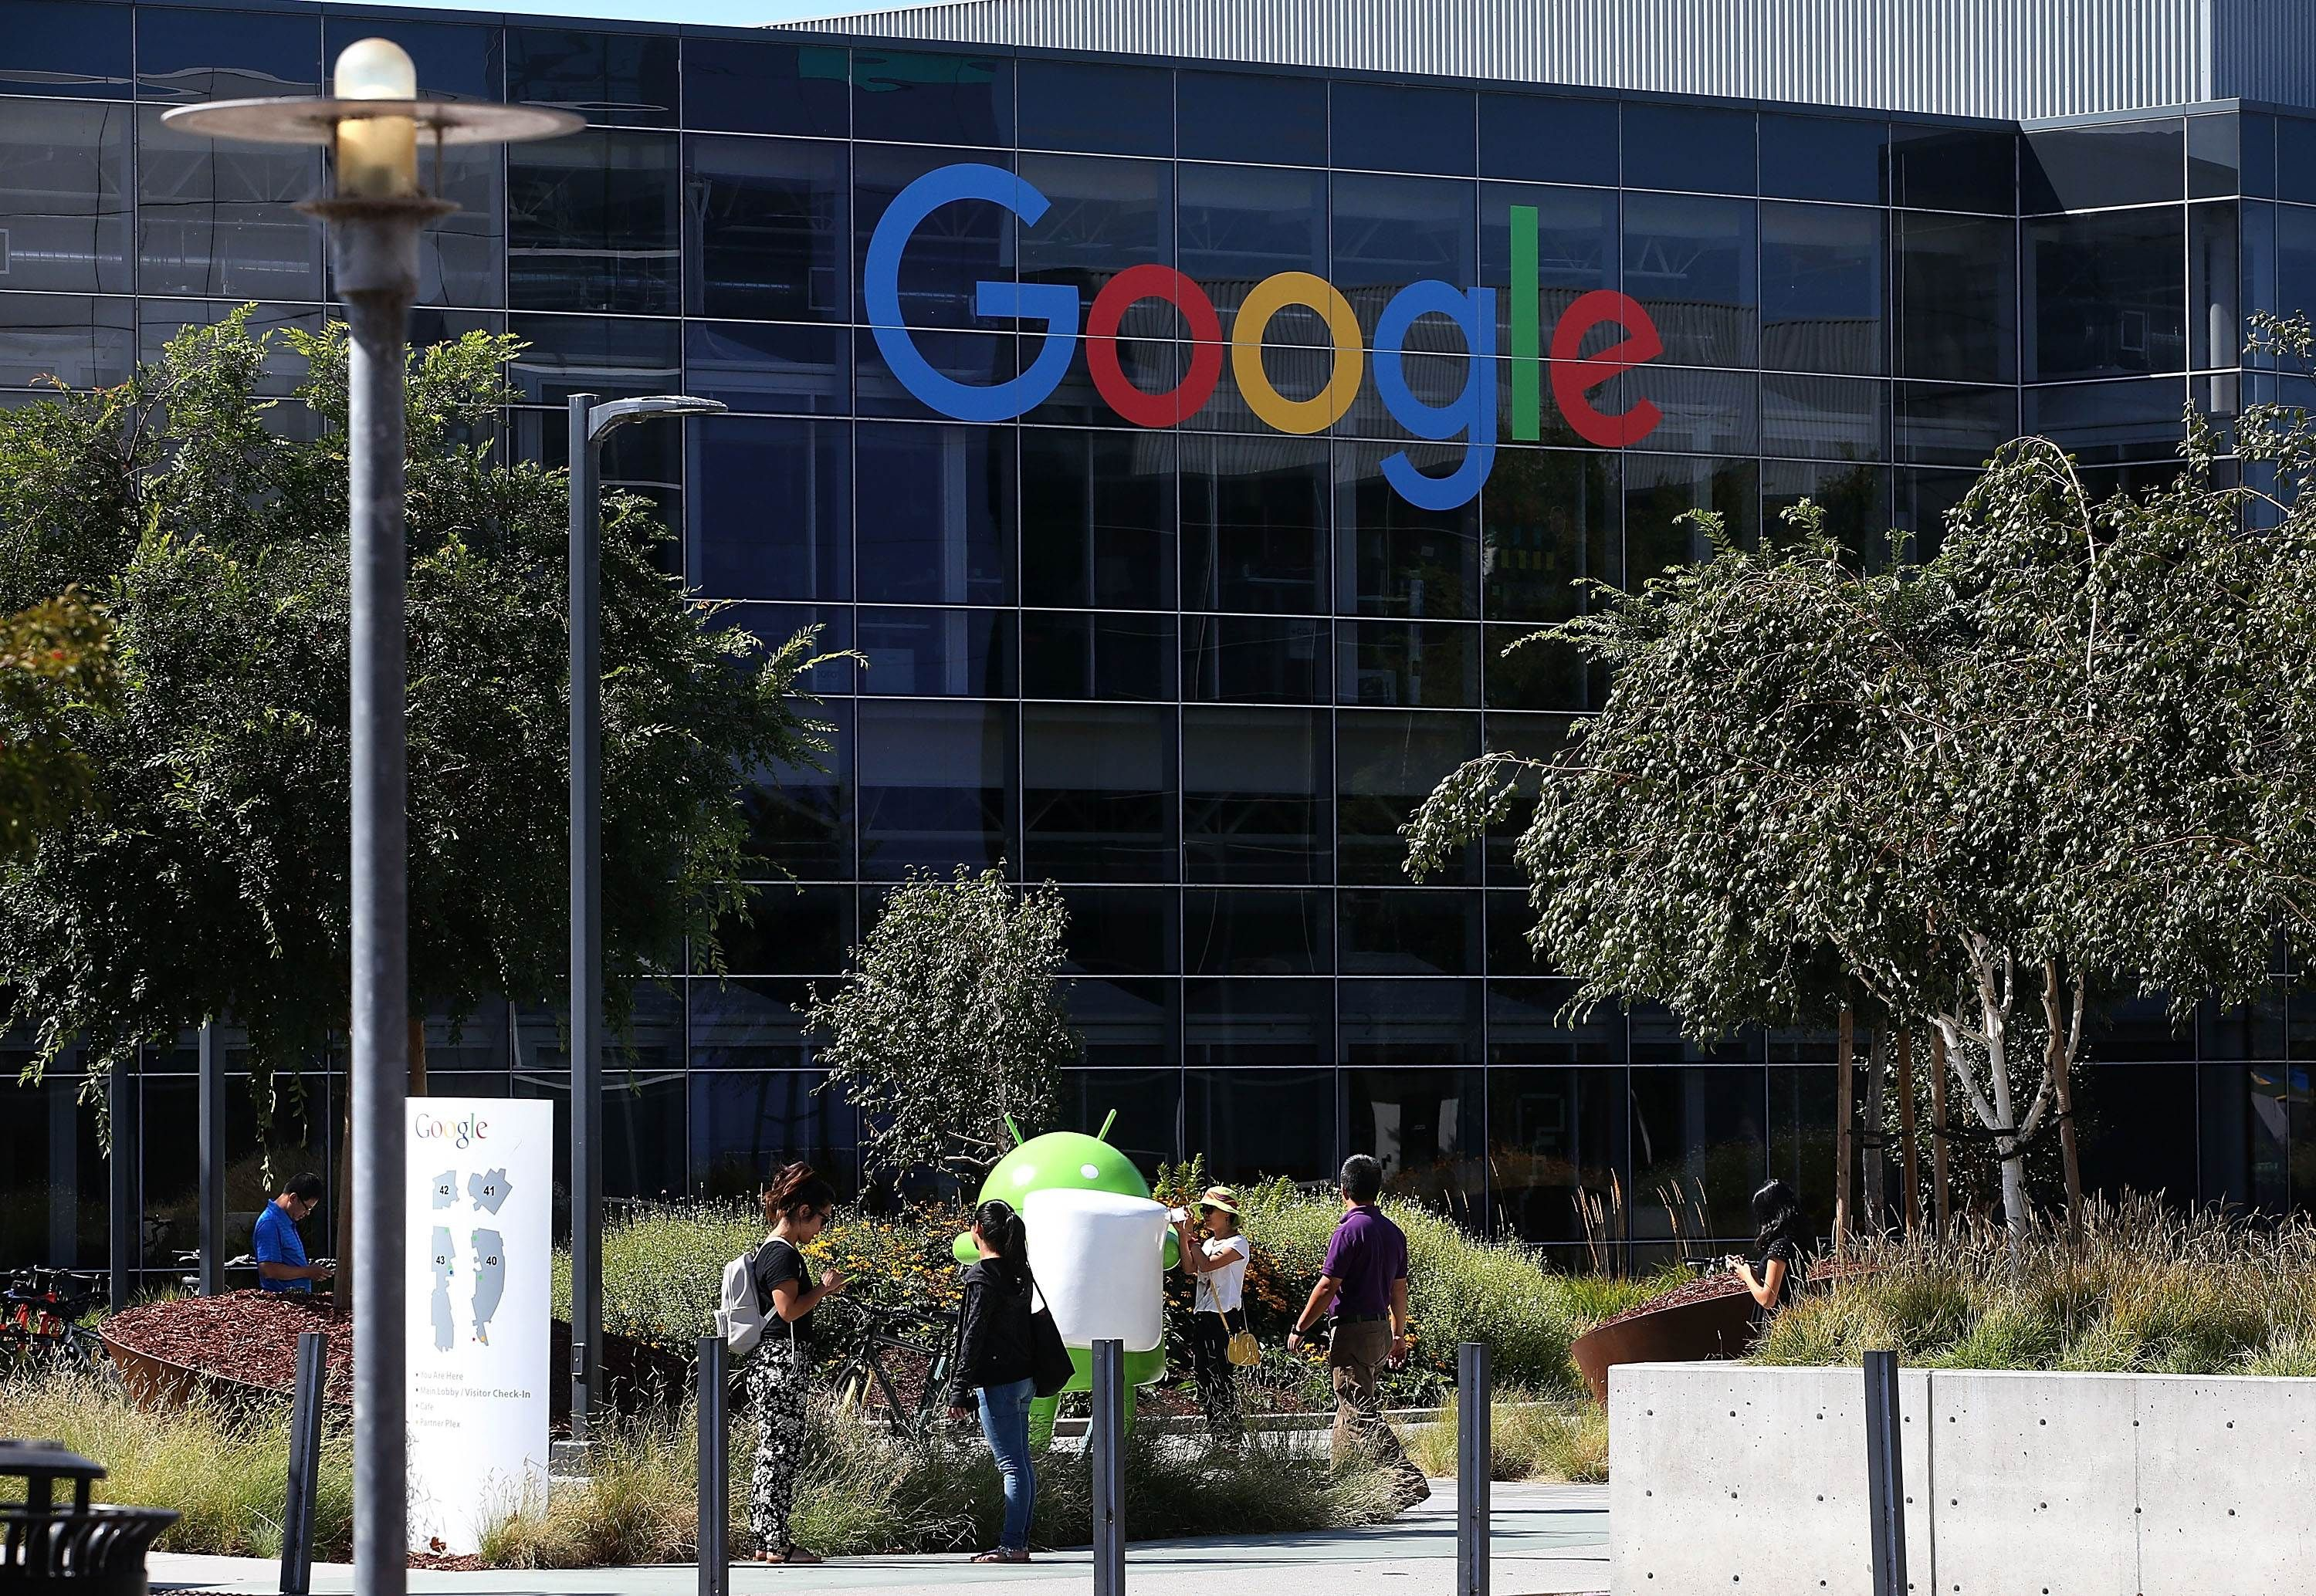 MOUNTAIN VIEW, CA - SEPTEMBER 02: The new Google logo is displayed at the Google headquarters on September 2, 2015 in Mountain View, California. Google has made the most dramatic change to their logo since 1999 and have replaced their signature serif font with a new typeface called Product Sans.   Justin Sullivan/Getty Images/AFP == FOR NEWSPAPERS, INTERNET, TELCOS & TELEVISION USE ONLY ==